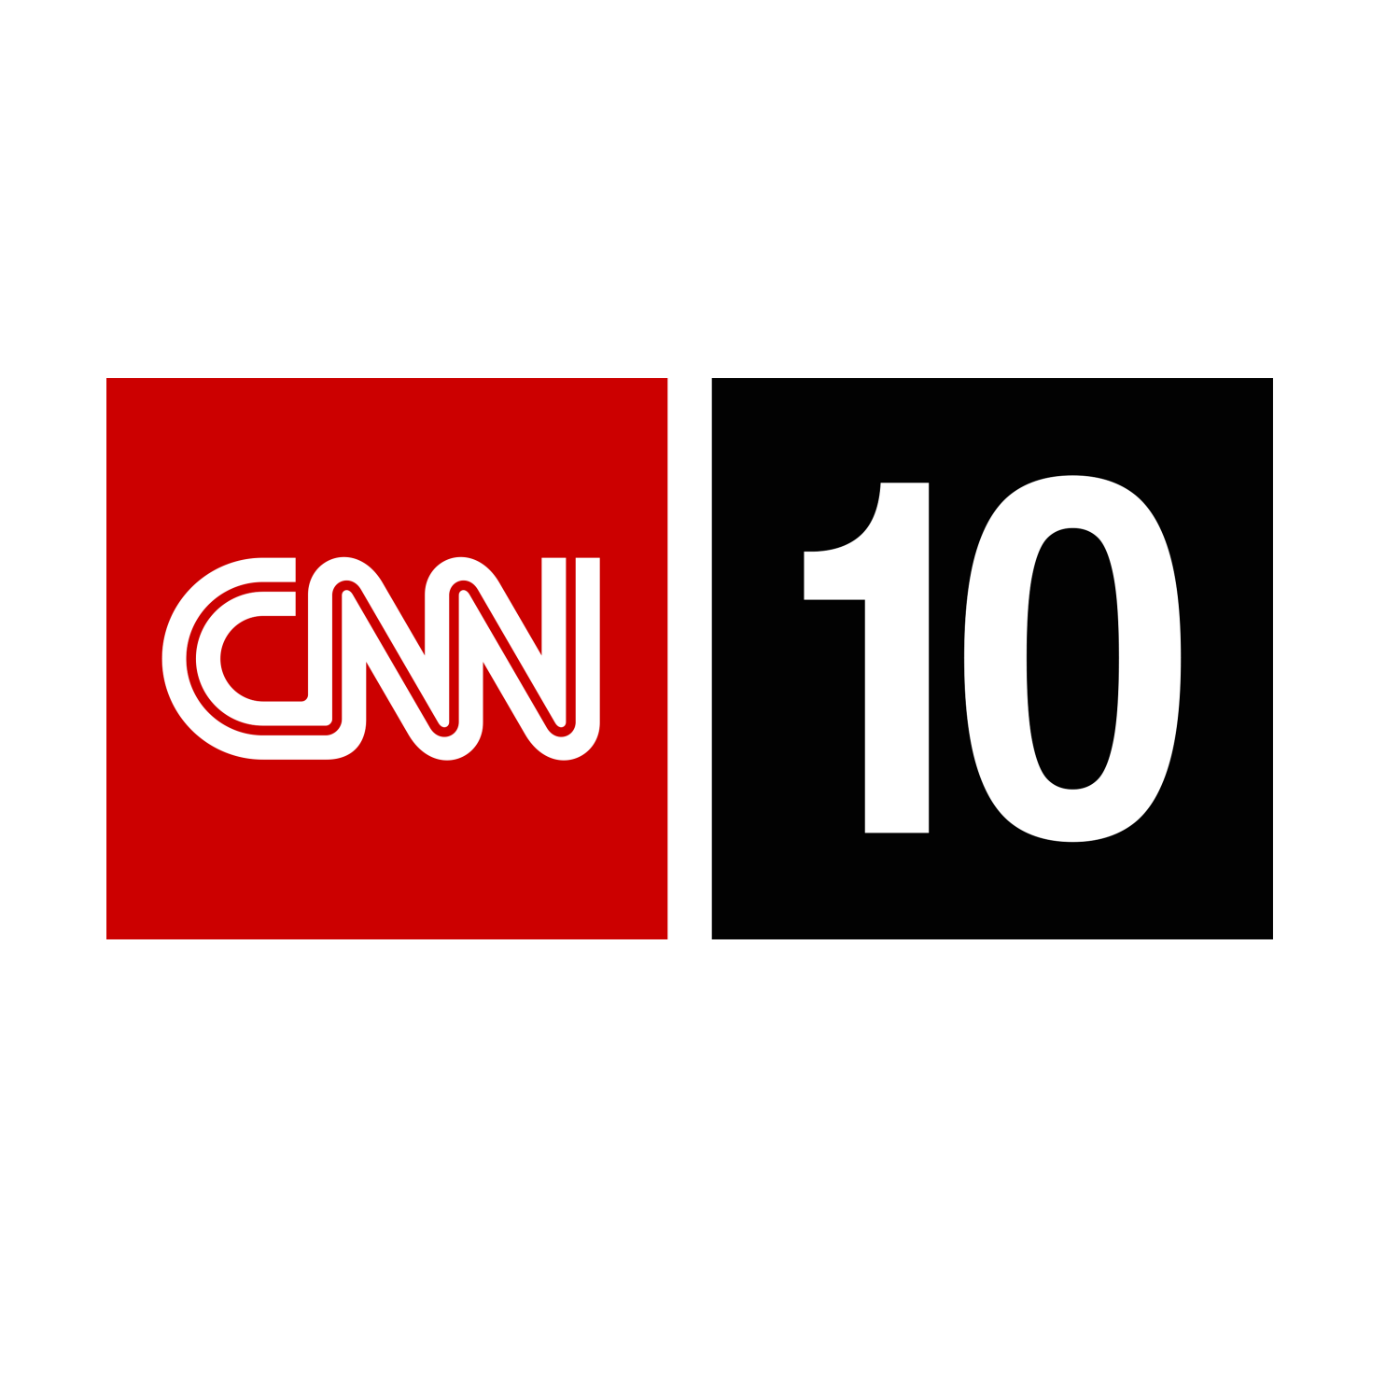 CNN Student News - May 15, 2013